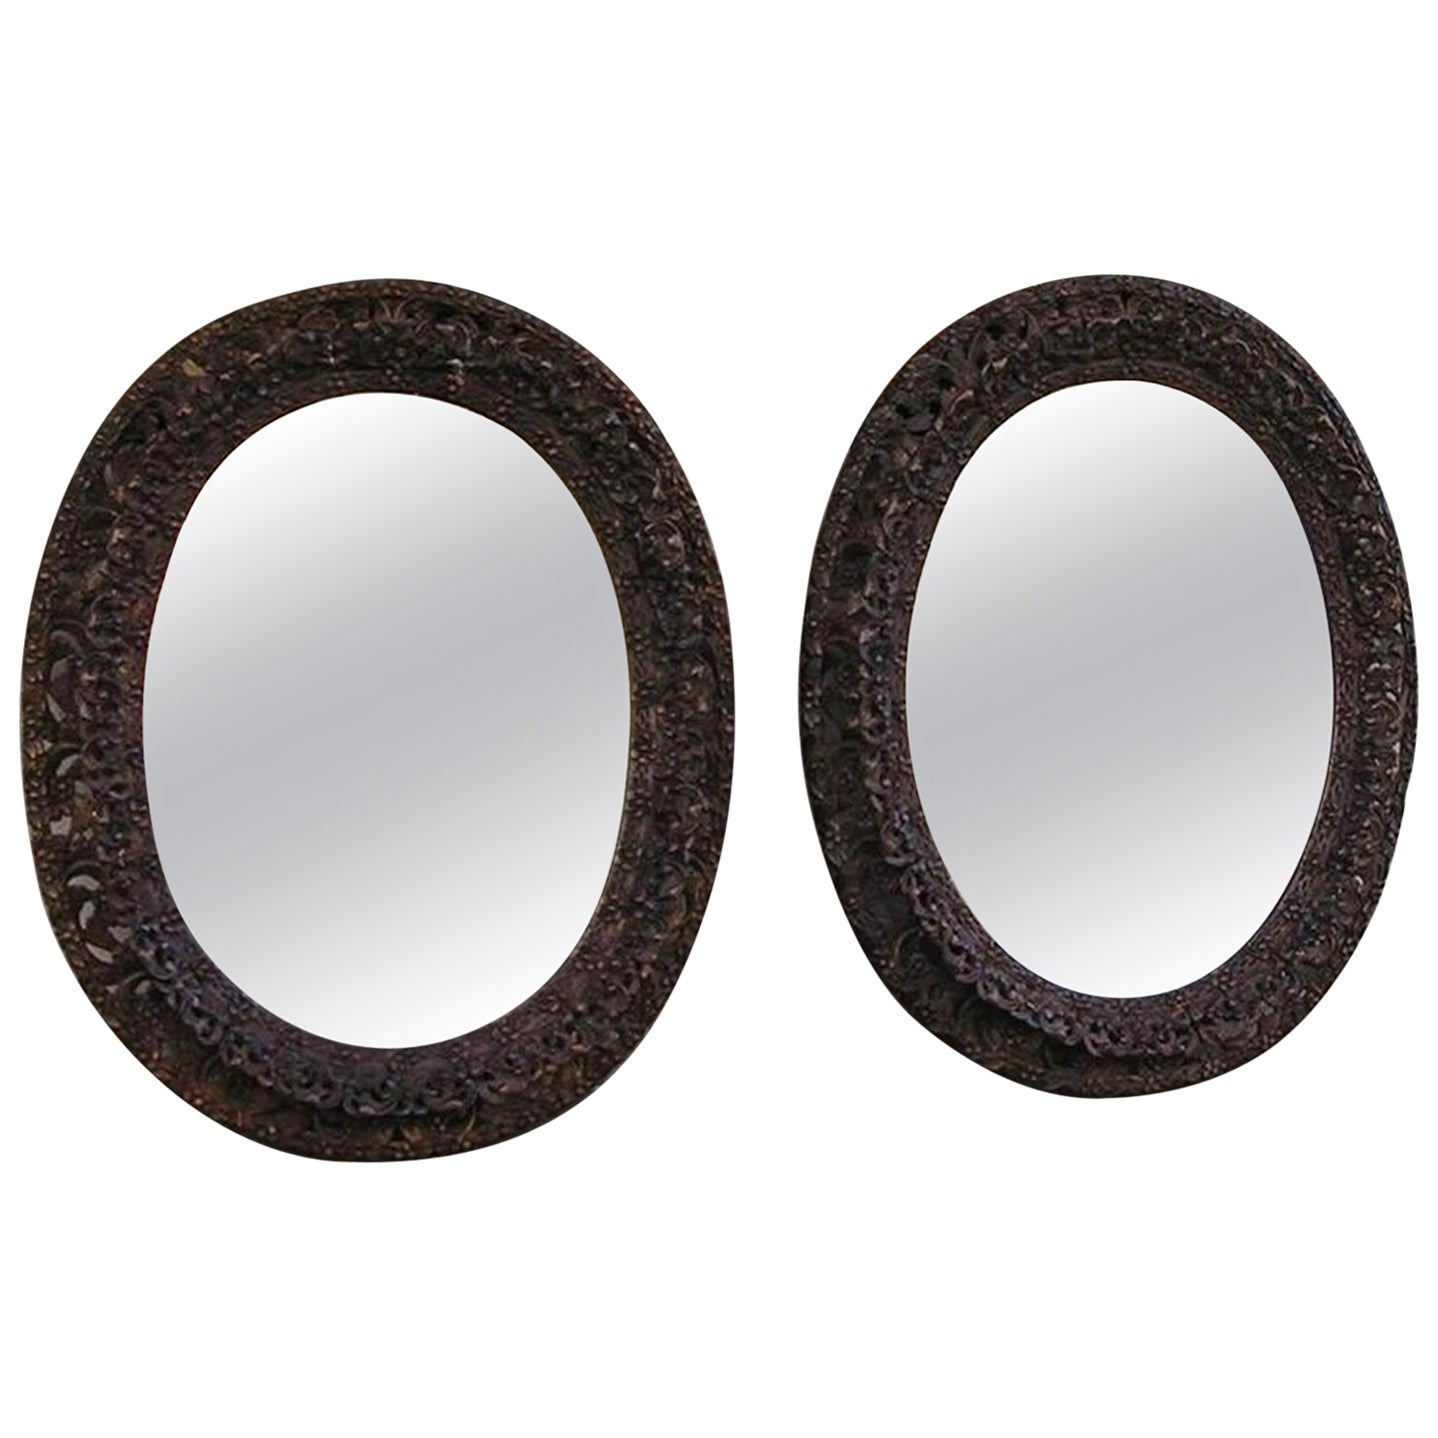 Pair of Anglo-Indian Mahogany Floral Carved Oval Mirrors, Circa 1810